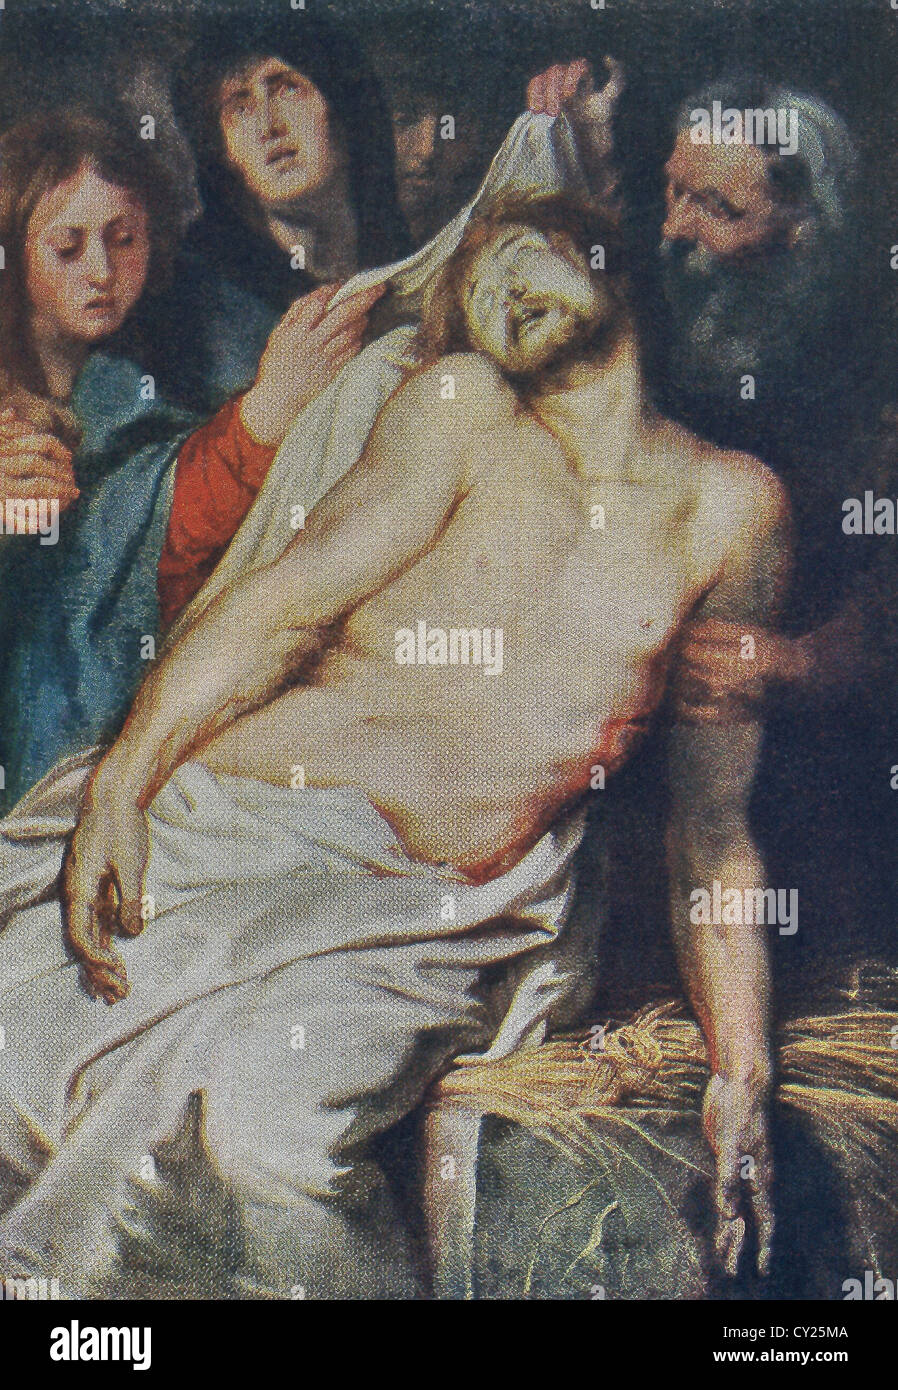 This painting is the central panel of a triptych titled Christ a La Paille by Peter Paul Rubens for tomb of an Antwerp - Stock Image